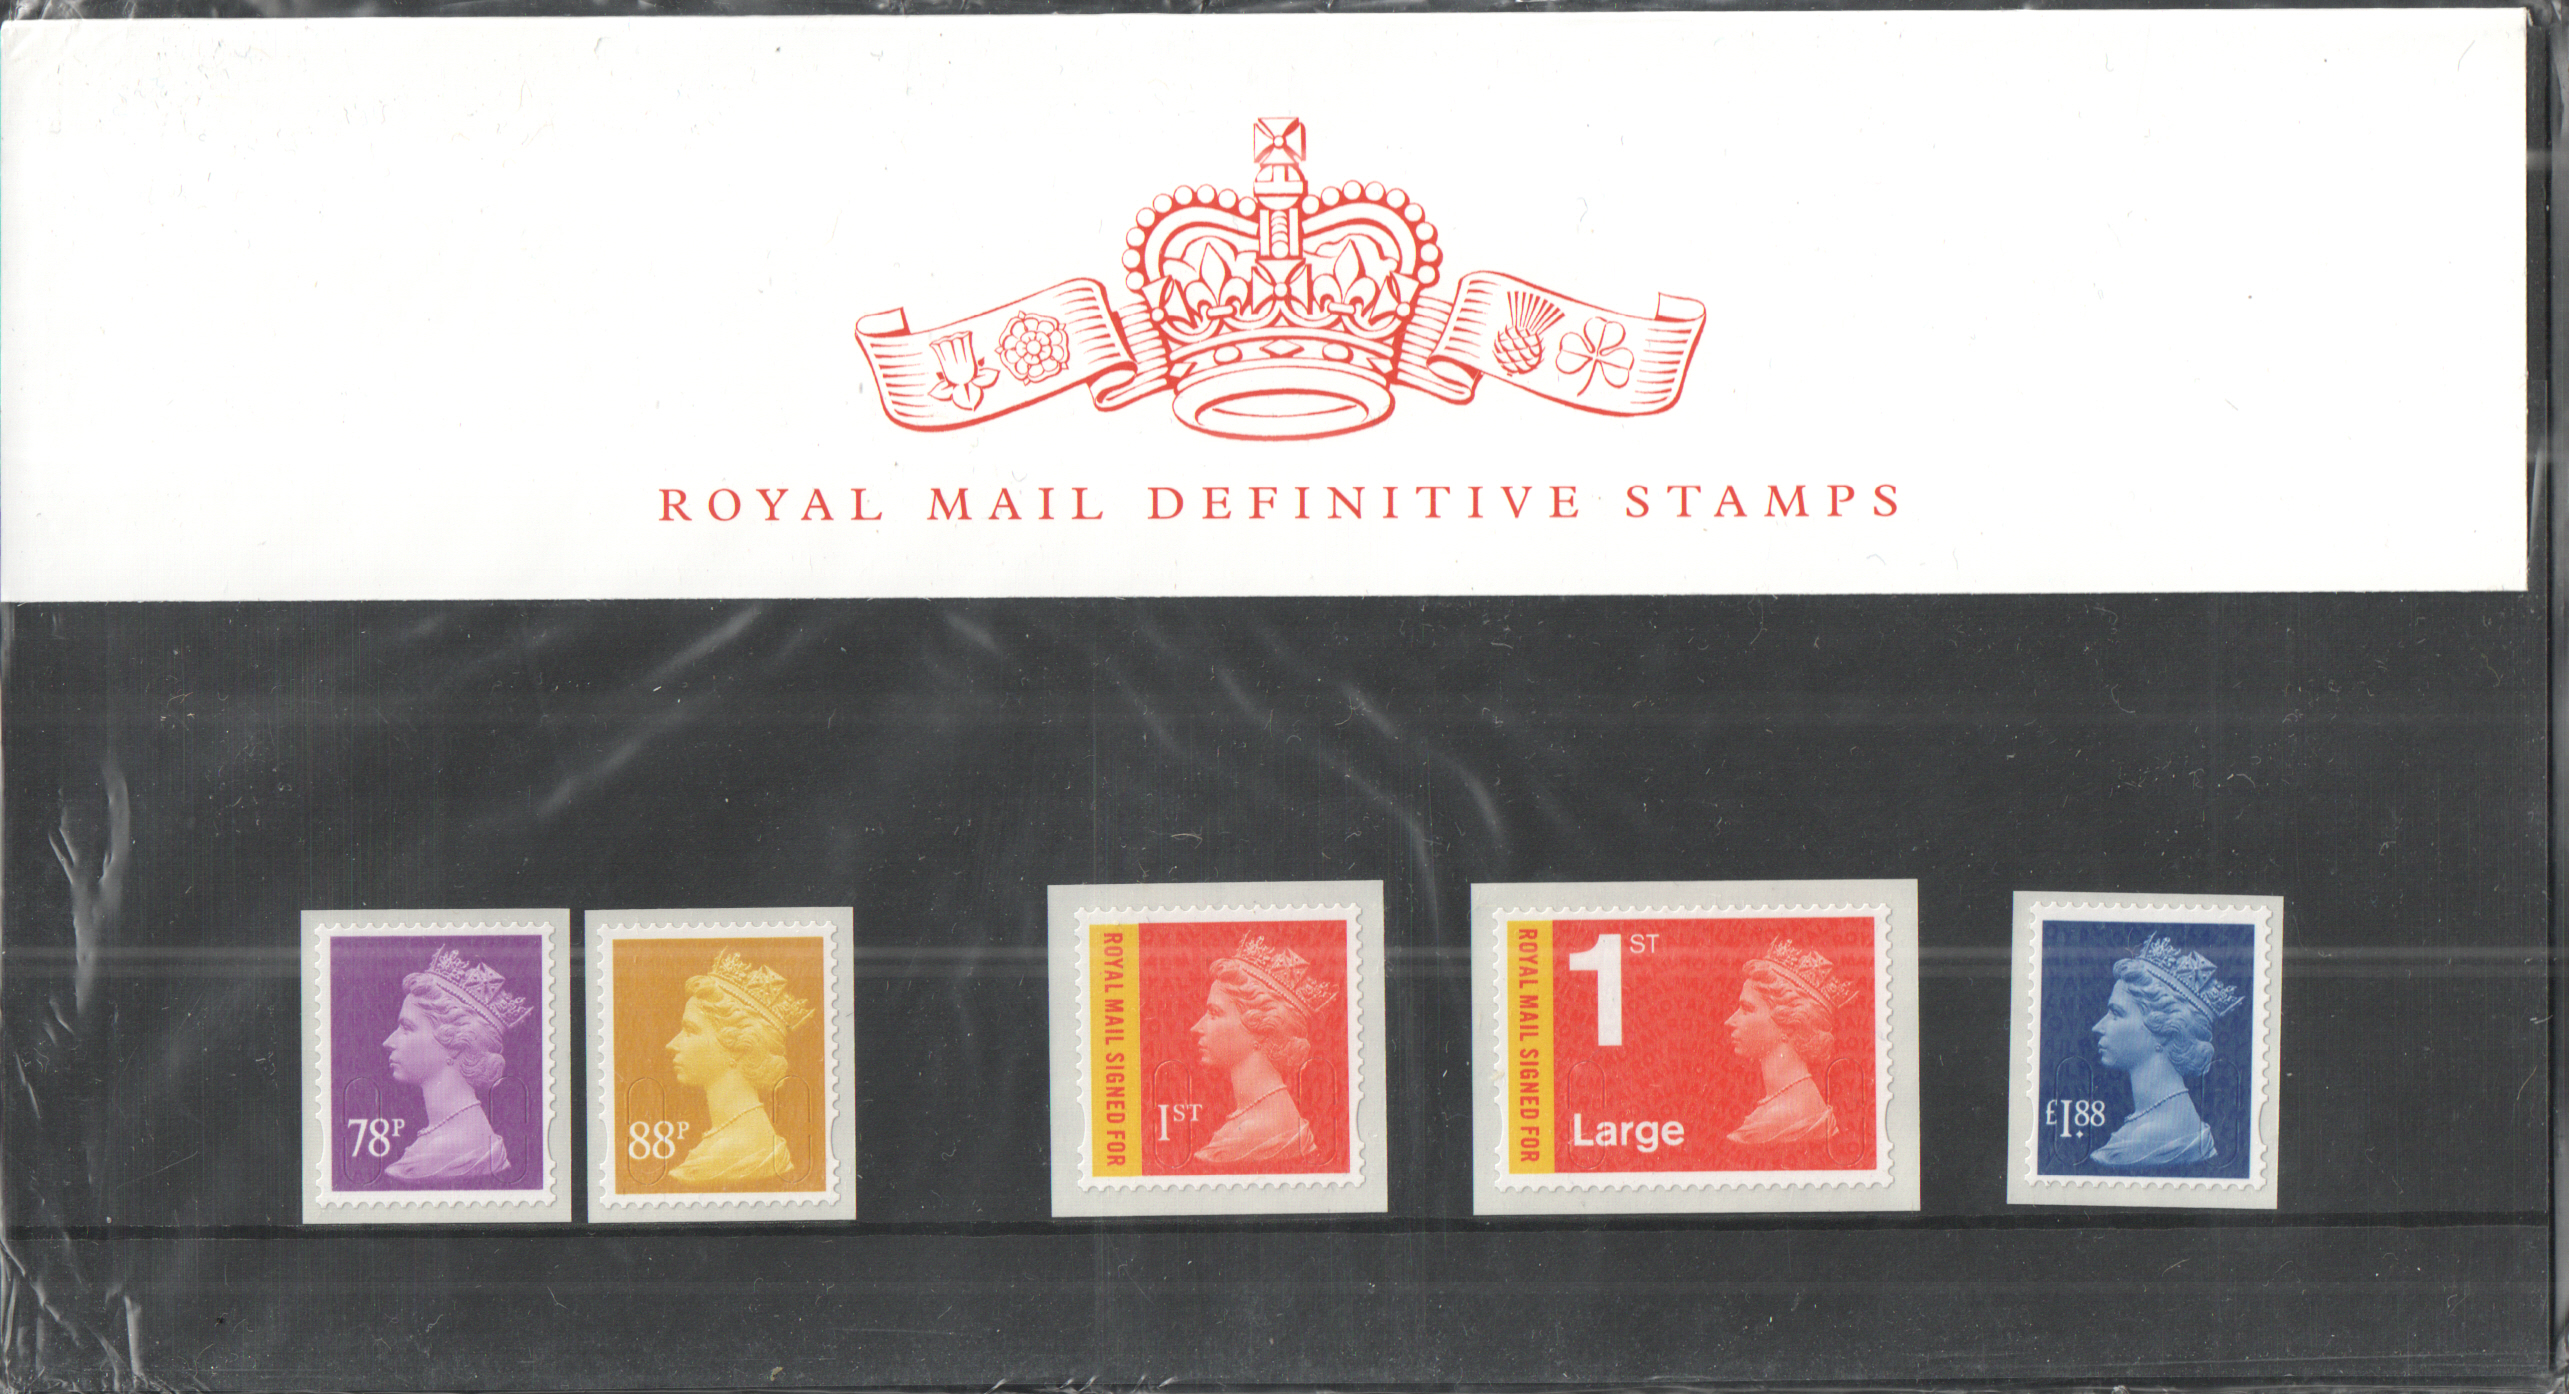 2013 Machin Definitive Royal Mail Presentation Pack 97